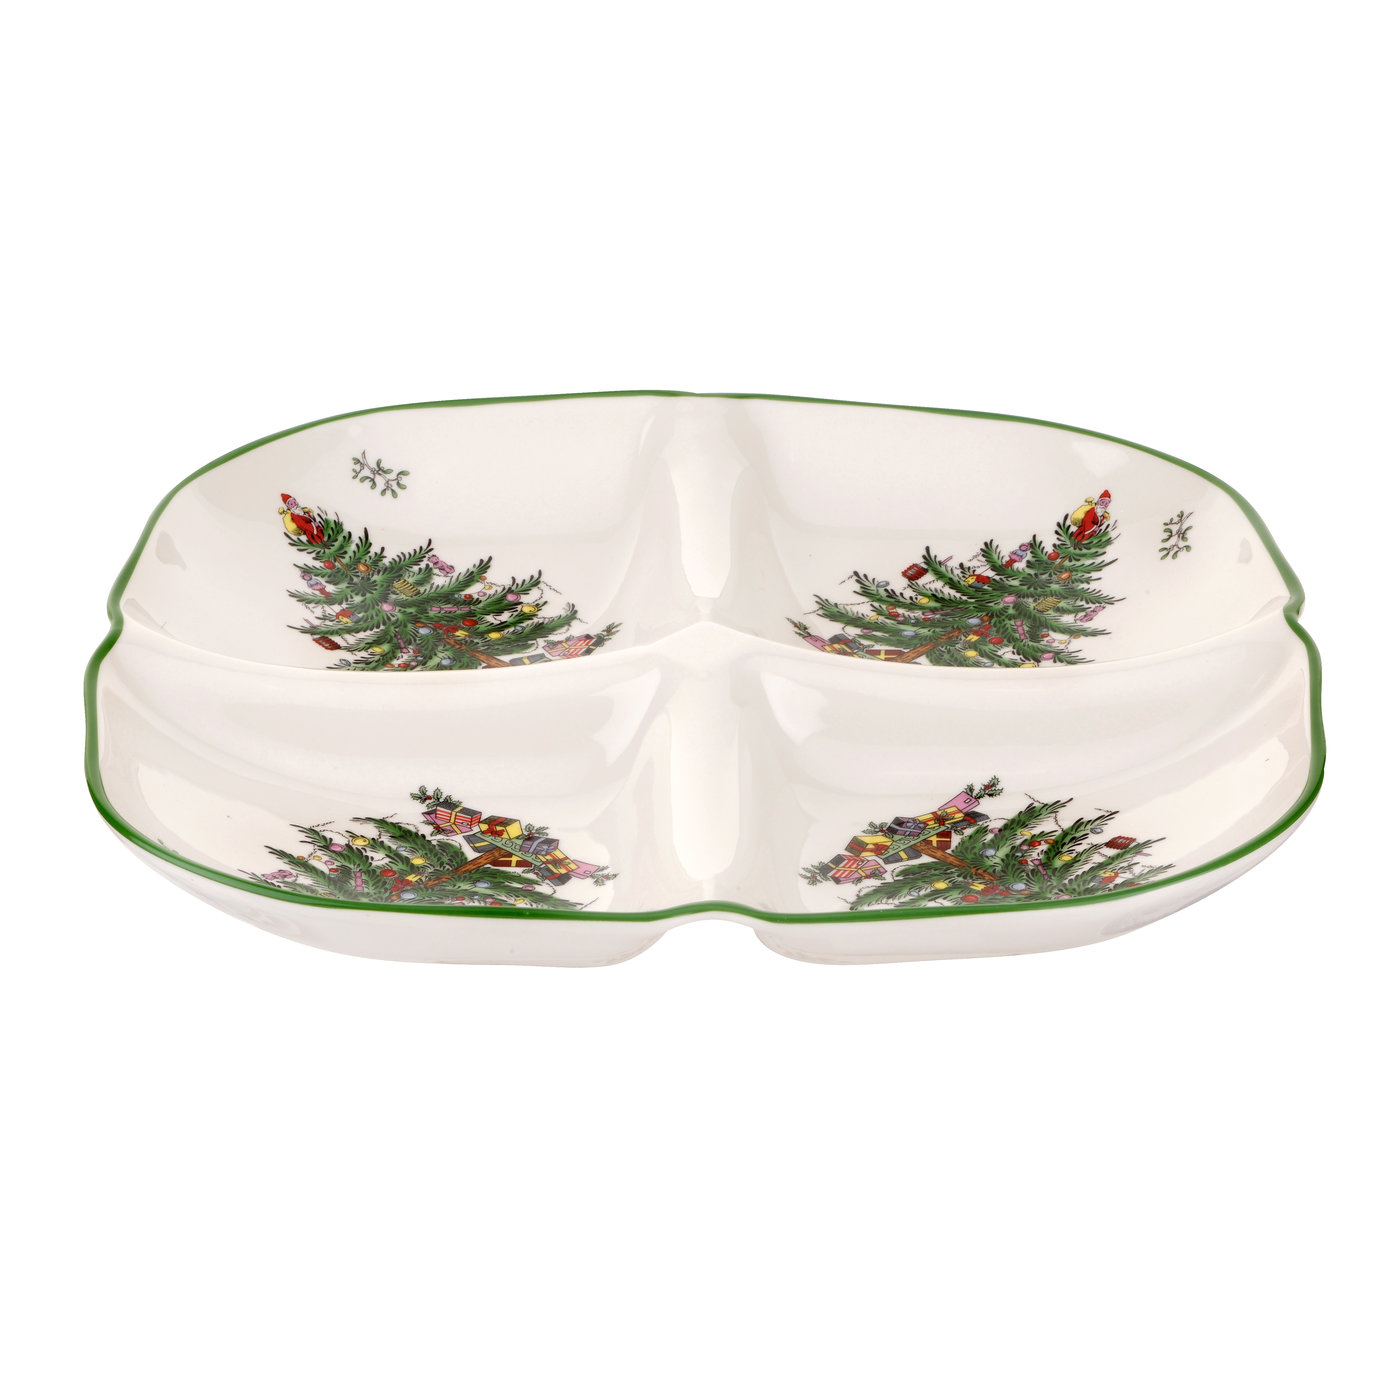 Spode Christmas Tree Sculpted 4-Section Tray image number 0